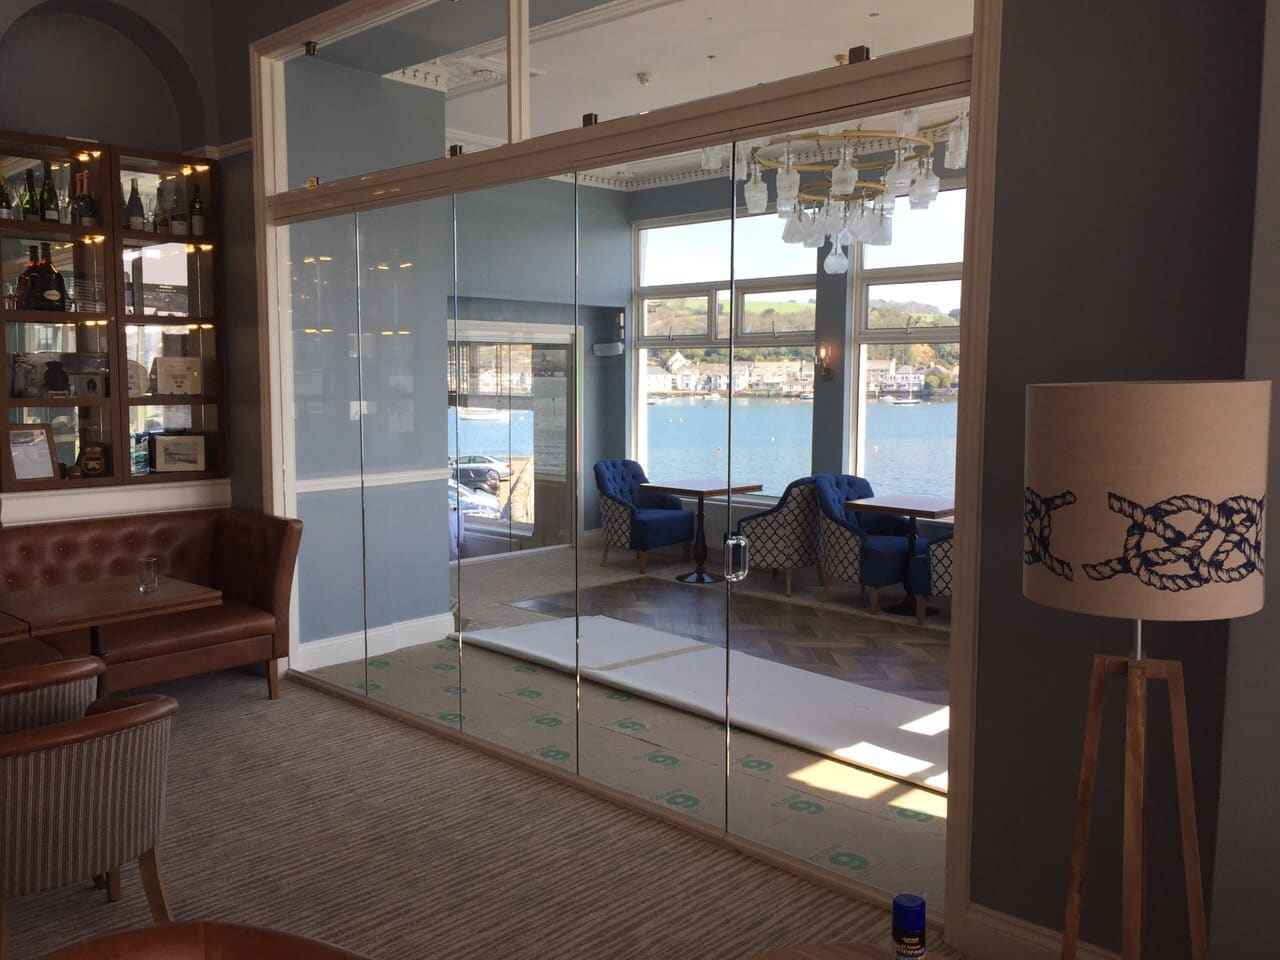 How frameless bifolding doors improve open plan living spaces